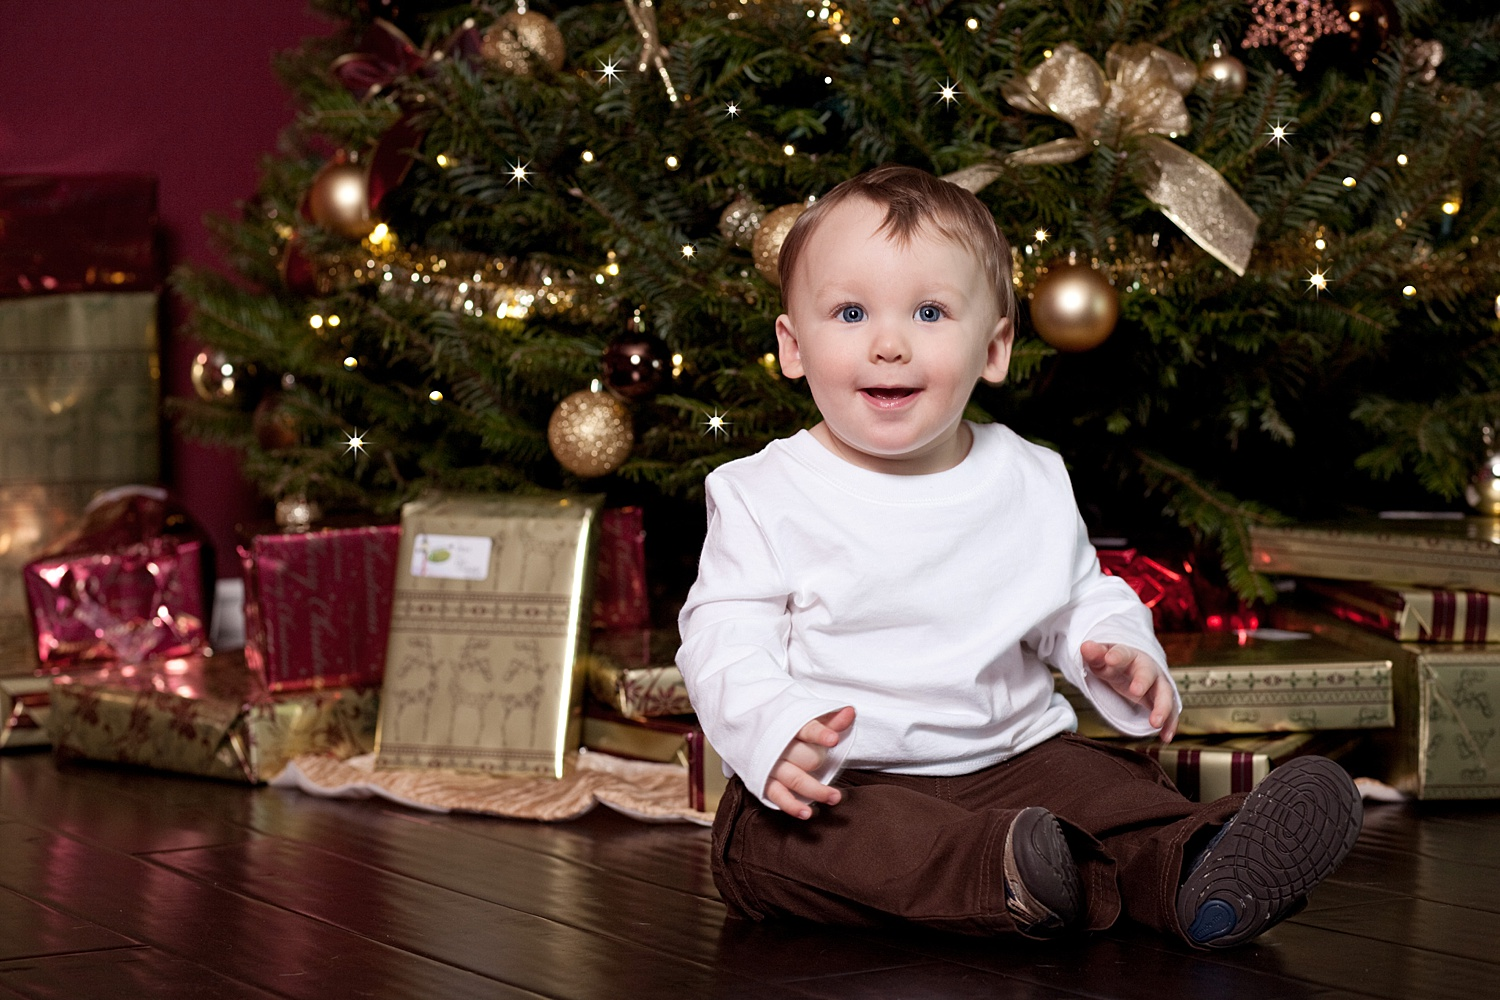 Image: Learn how to add twinkle lights to your holiday photo sessions in this article.